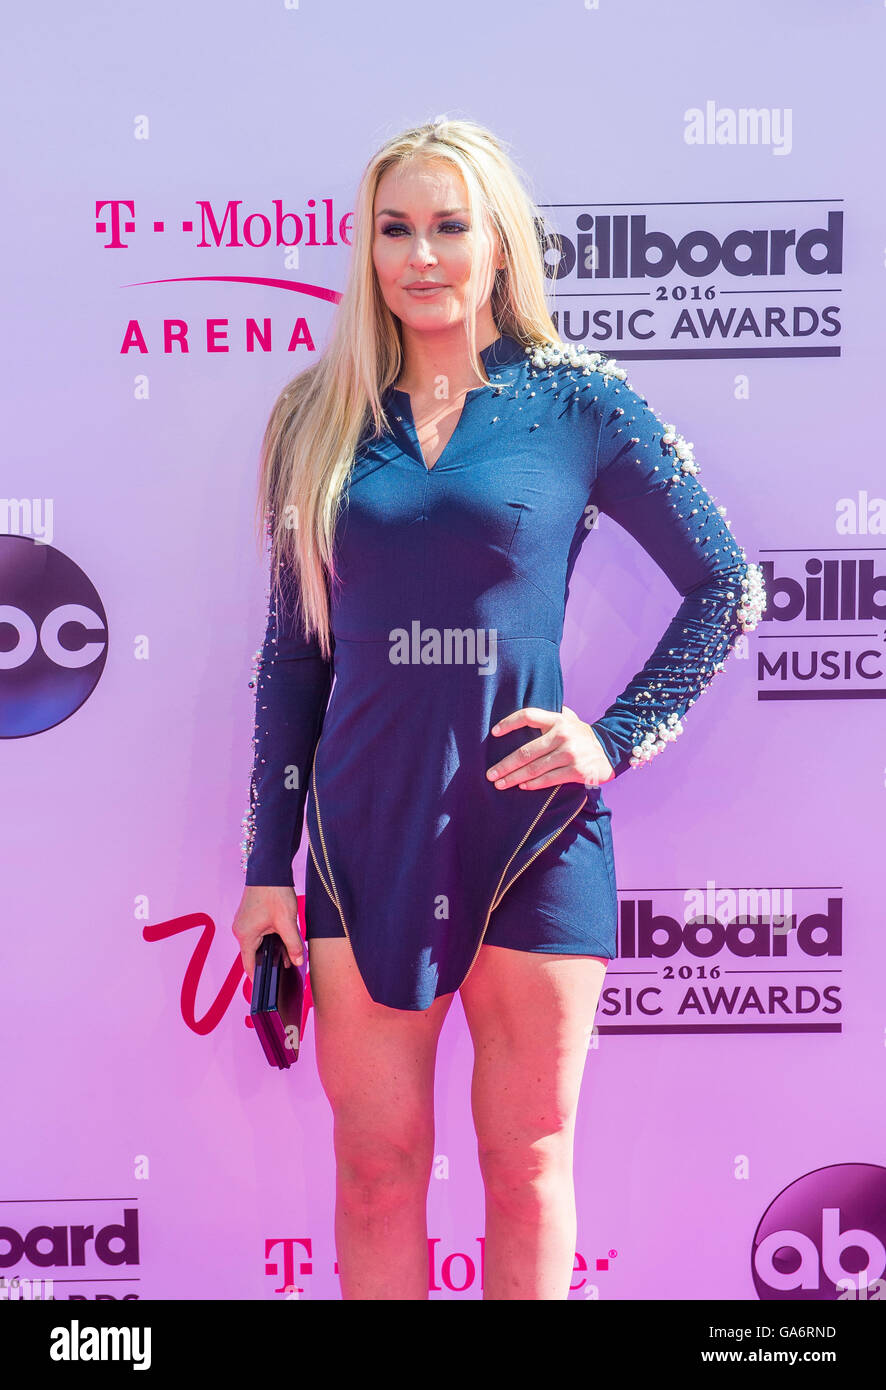 skiier-lindsey-vonn-attends-the-2016-billboard-music-awards-at-t-mobile-arena-in-las